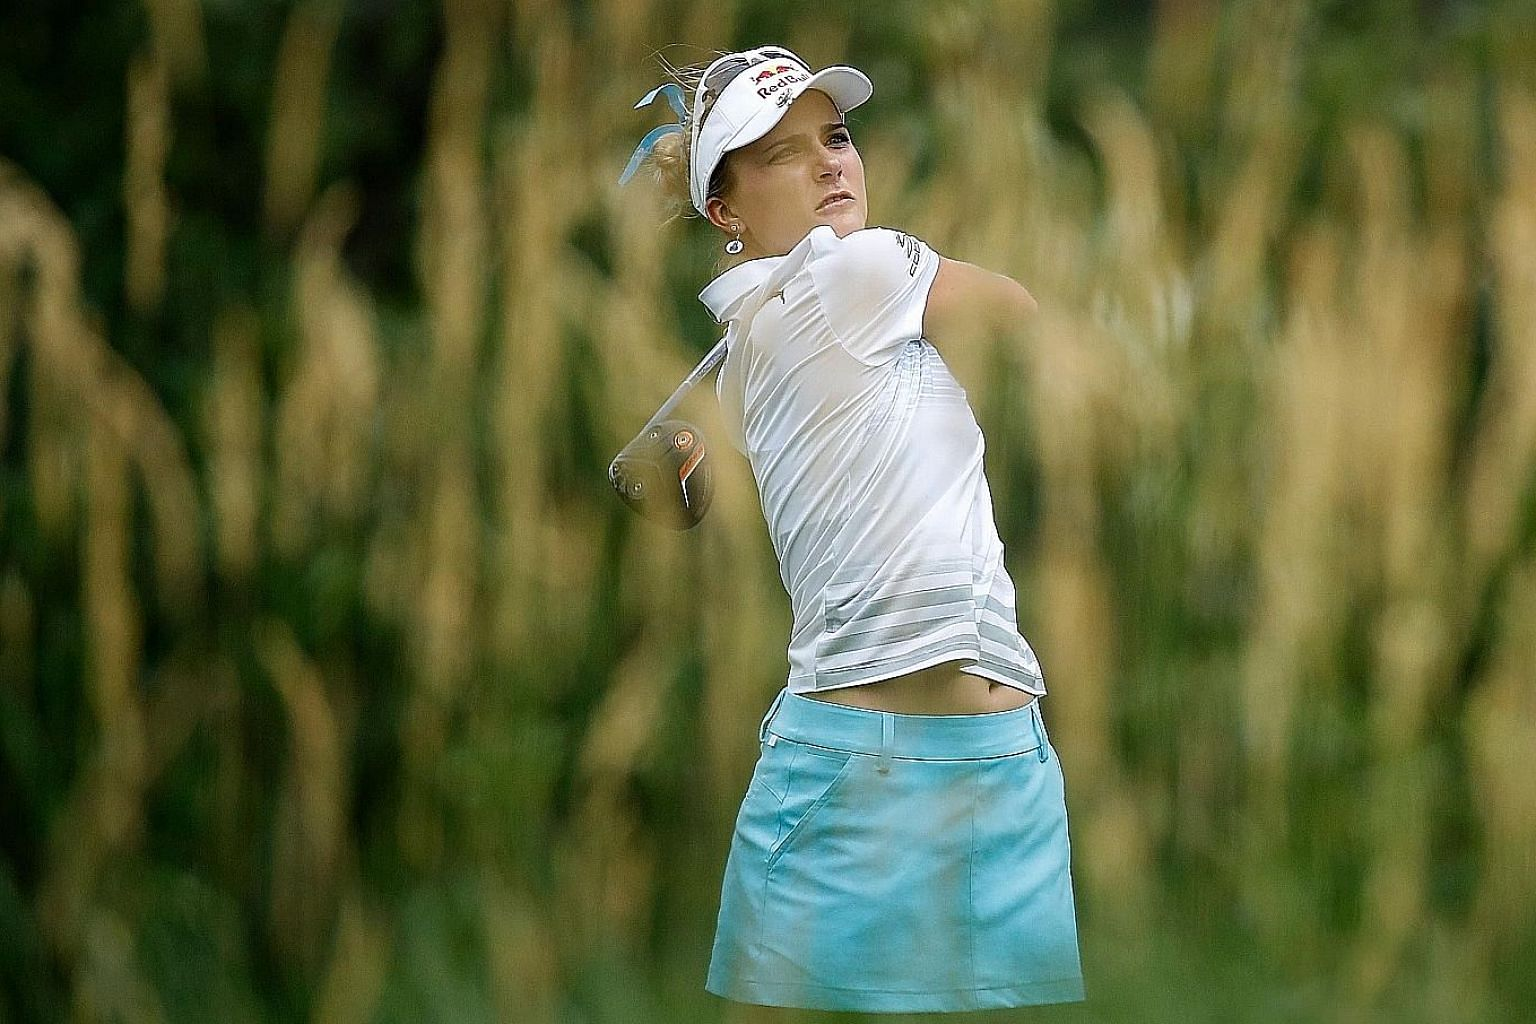 Lexi Thompson teeing off at the 16th hole during the opening round of the Women's PGA Championship. She mixed three birdies with two bogeys in her first round for a one-under 70.